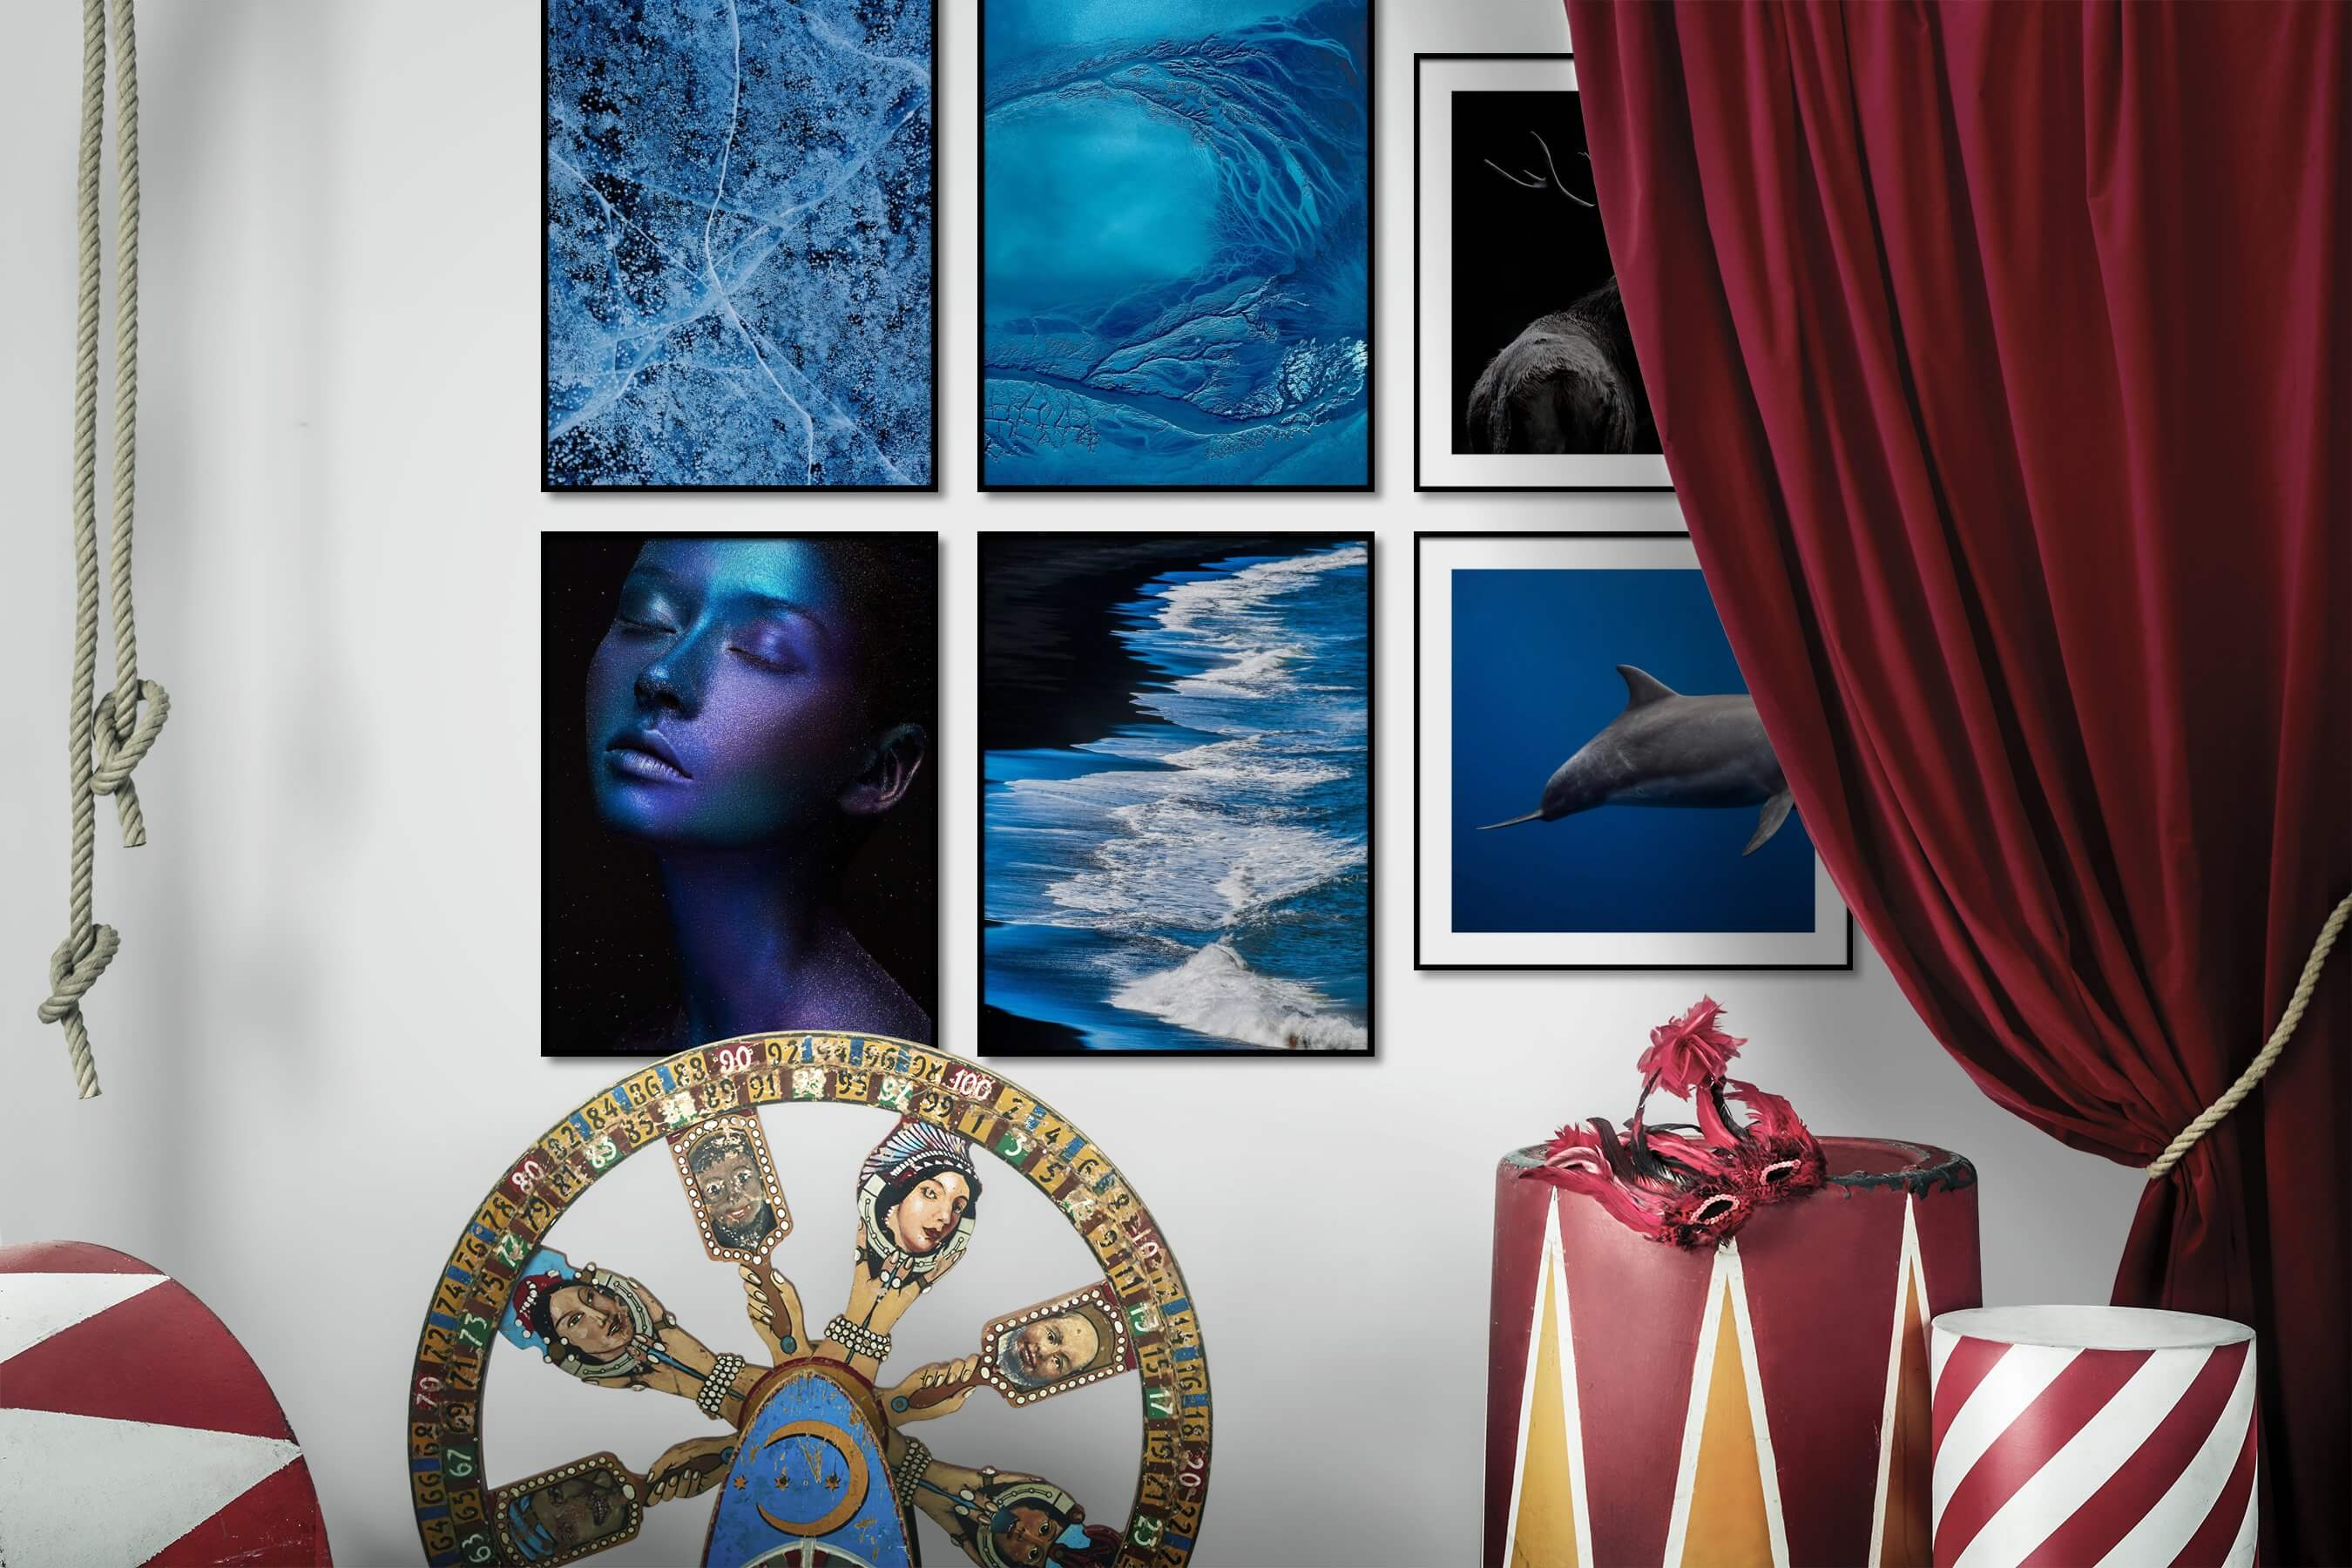 Gallery wall idea with six framed pictures arranged on a wall depicting For the Moderate, Nature, Colorful, Fashion & Beauty, Beach & Water, Dark Tones, Animals, and For the Minimalist